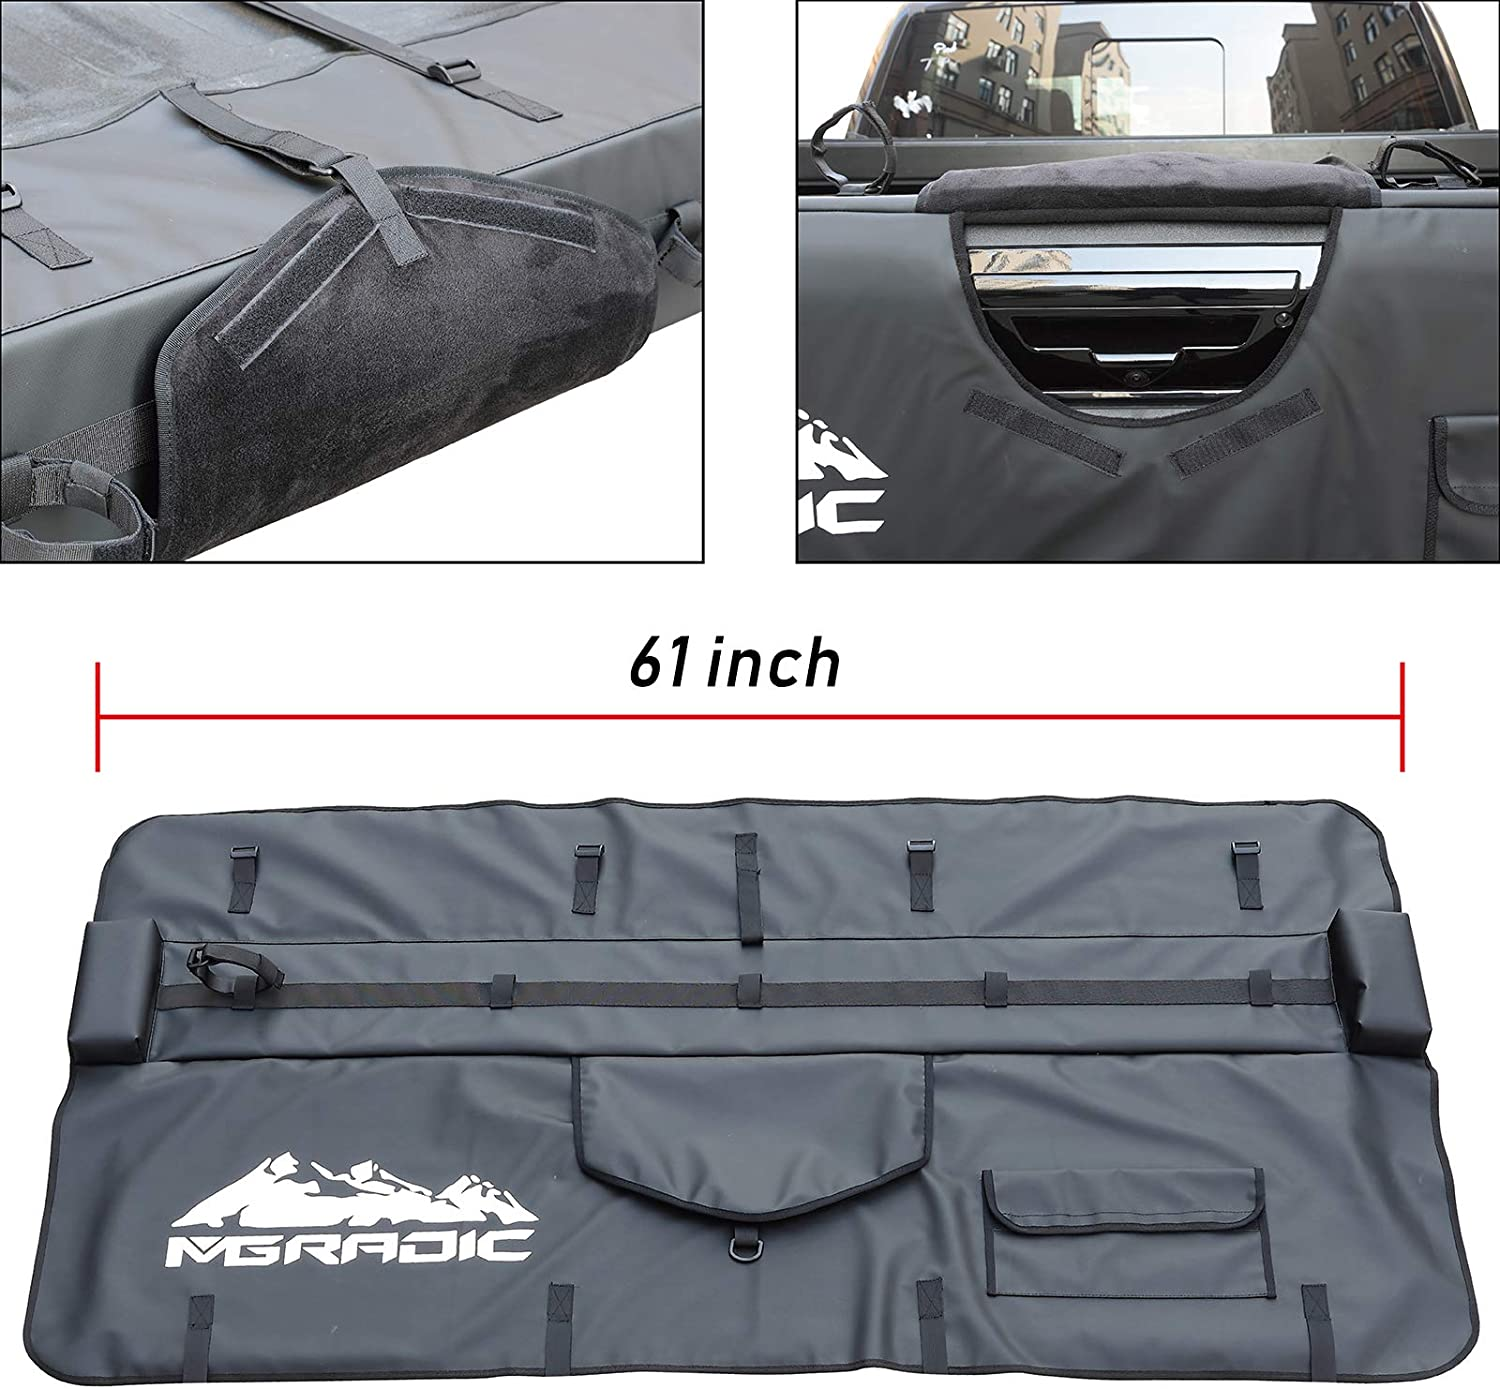 Large 61 Truck Tailgate Pad Shuttle Pad 5 Bikes for Middle /& Large Pickup Truck